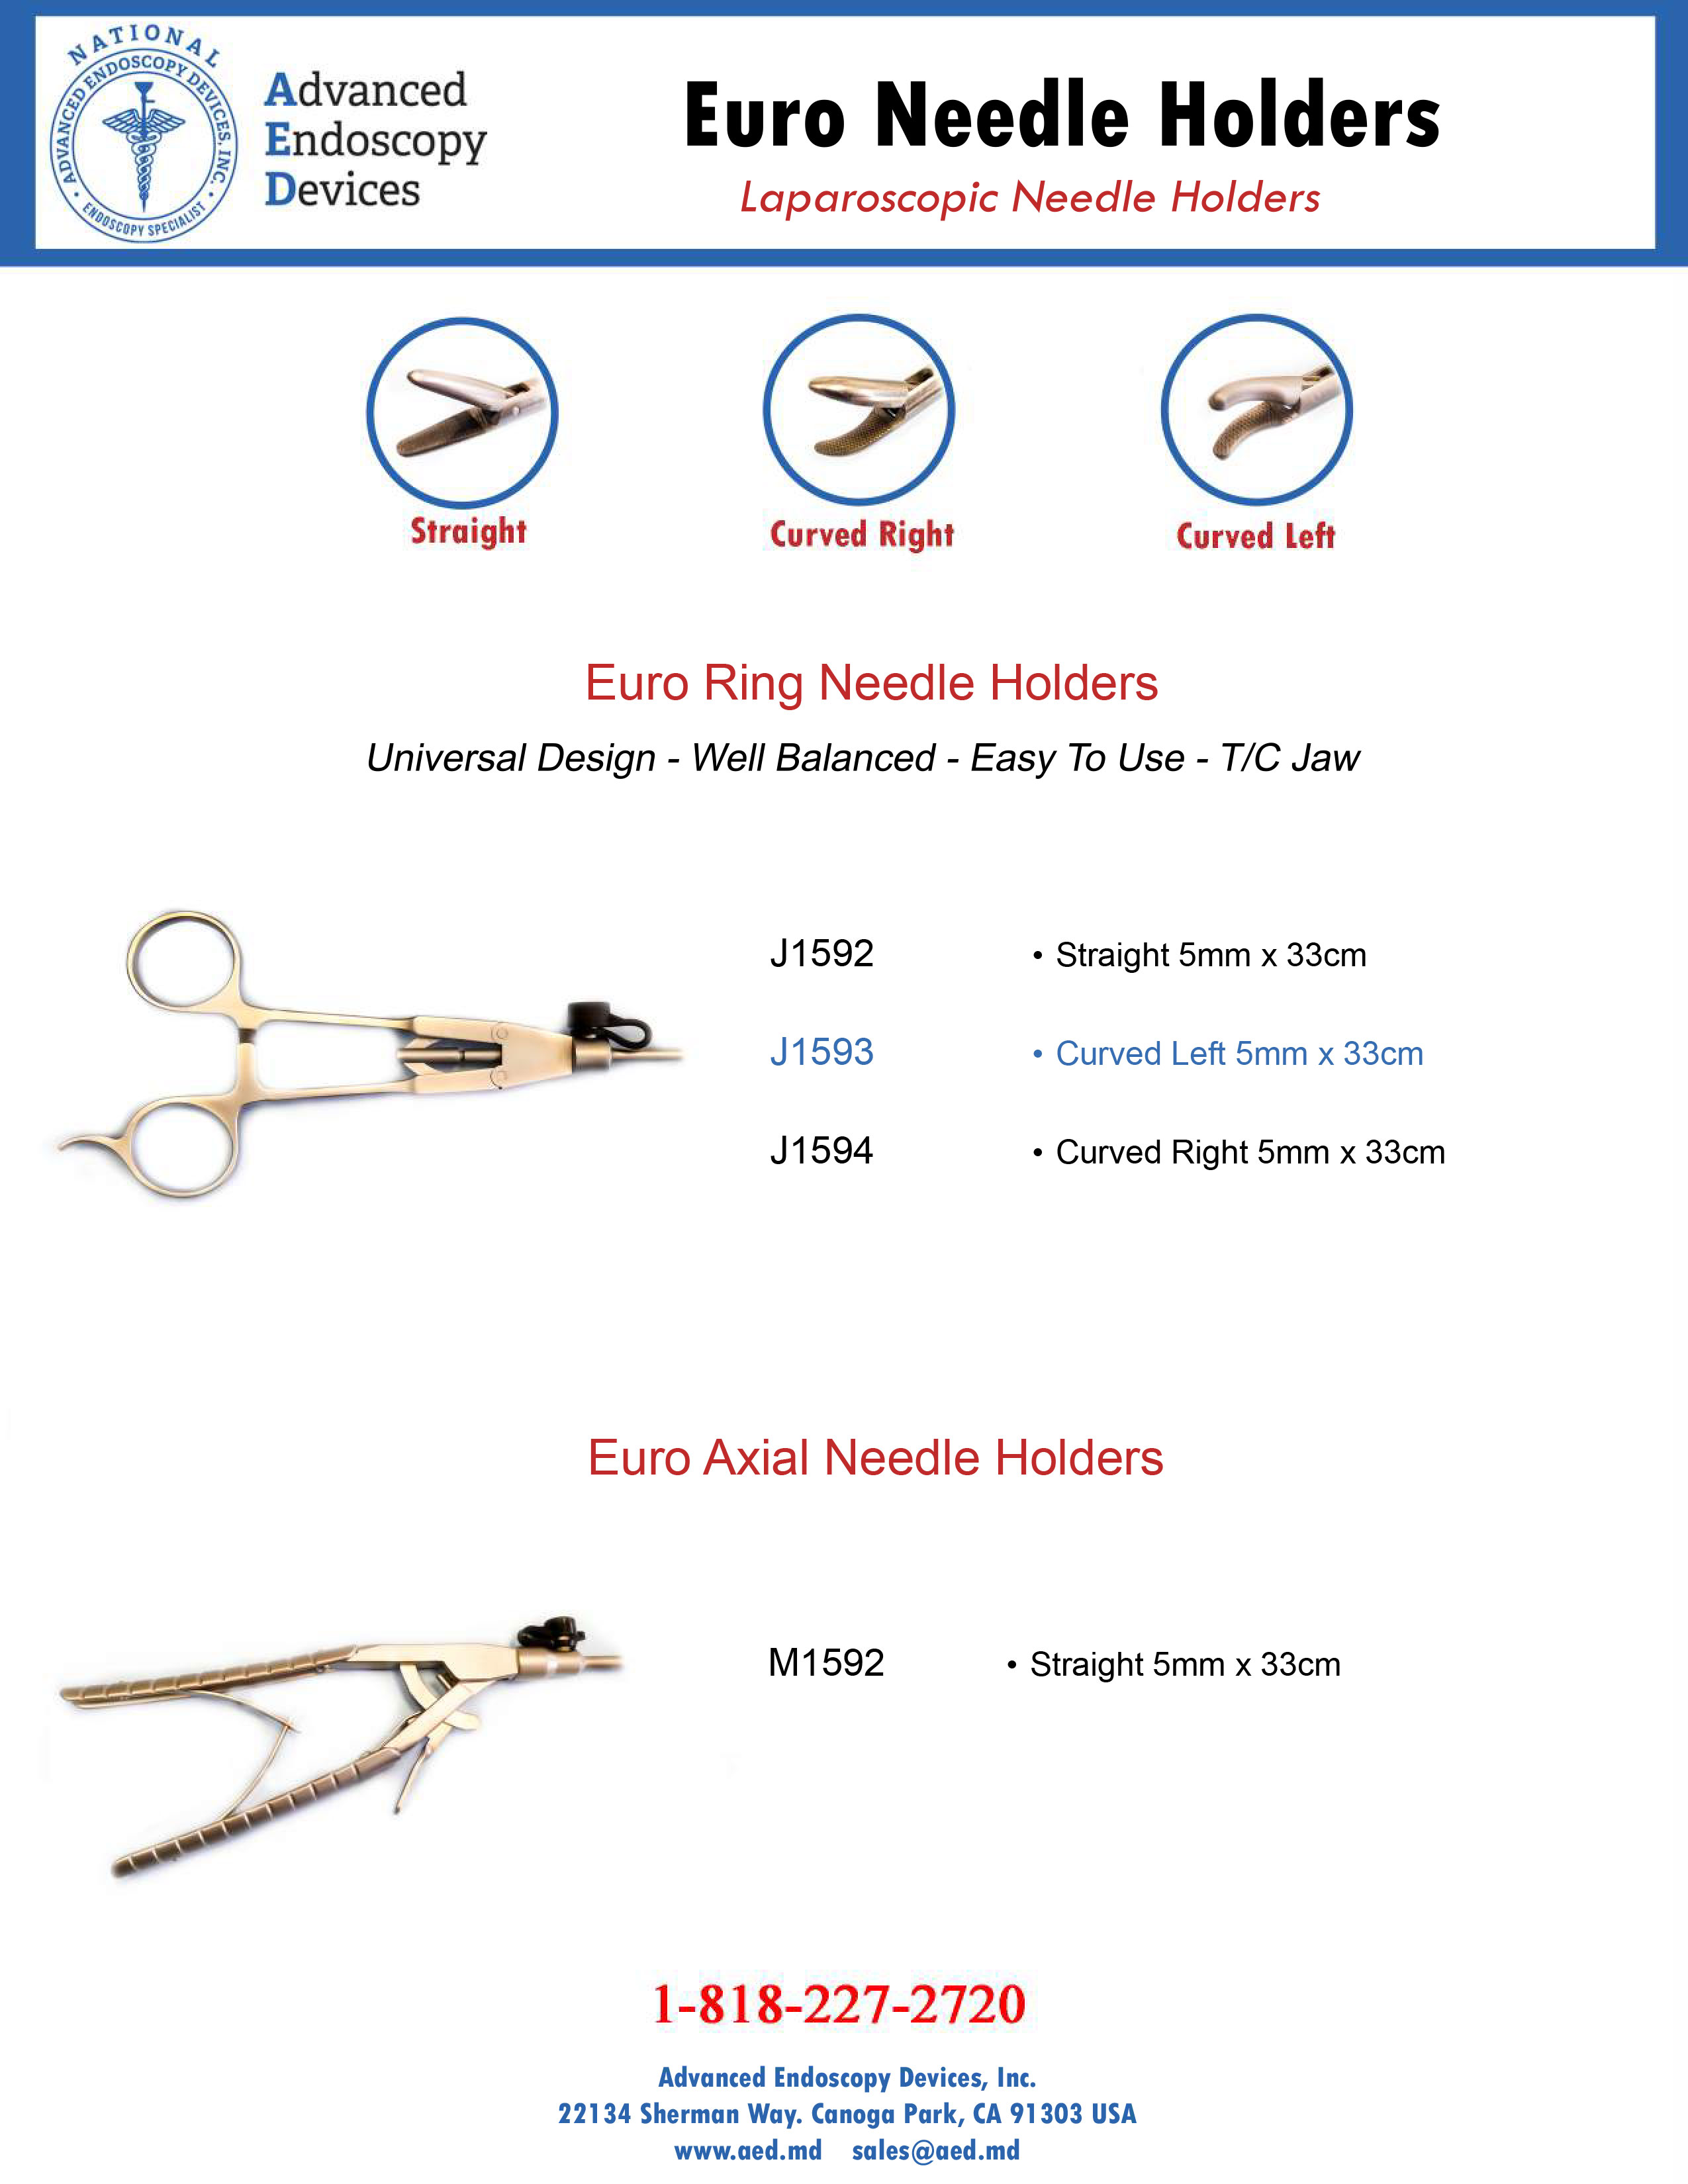 Euro Needle Holders Product Page